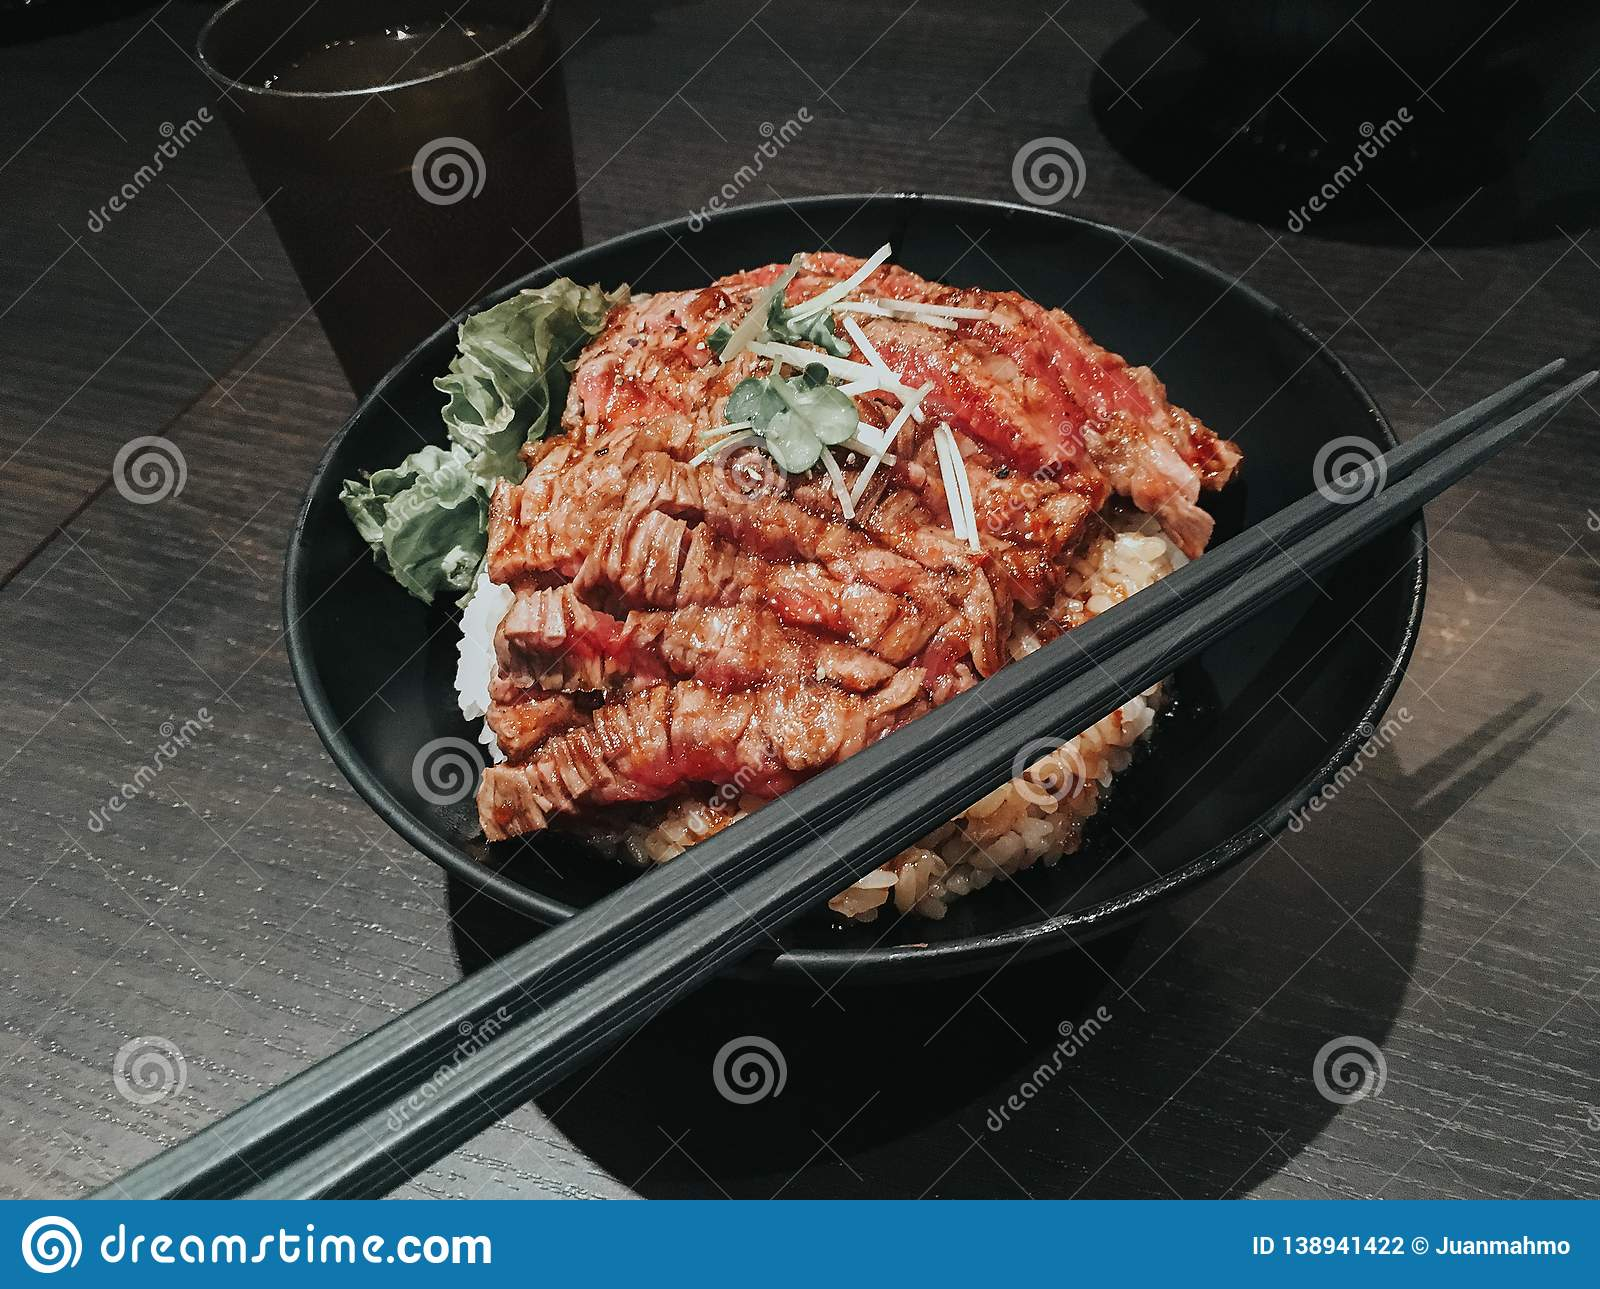 Japanese steak rice bowl. A steak is a meat generally sliced across the muscle fibers, potentially including a bone. Exceptions,